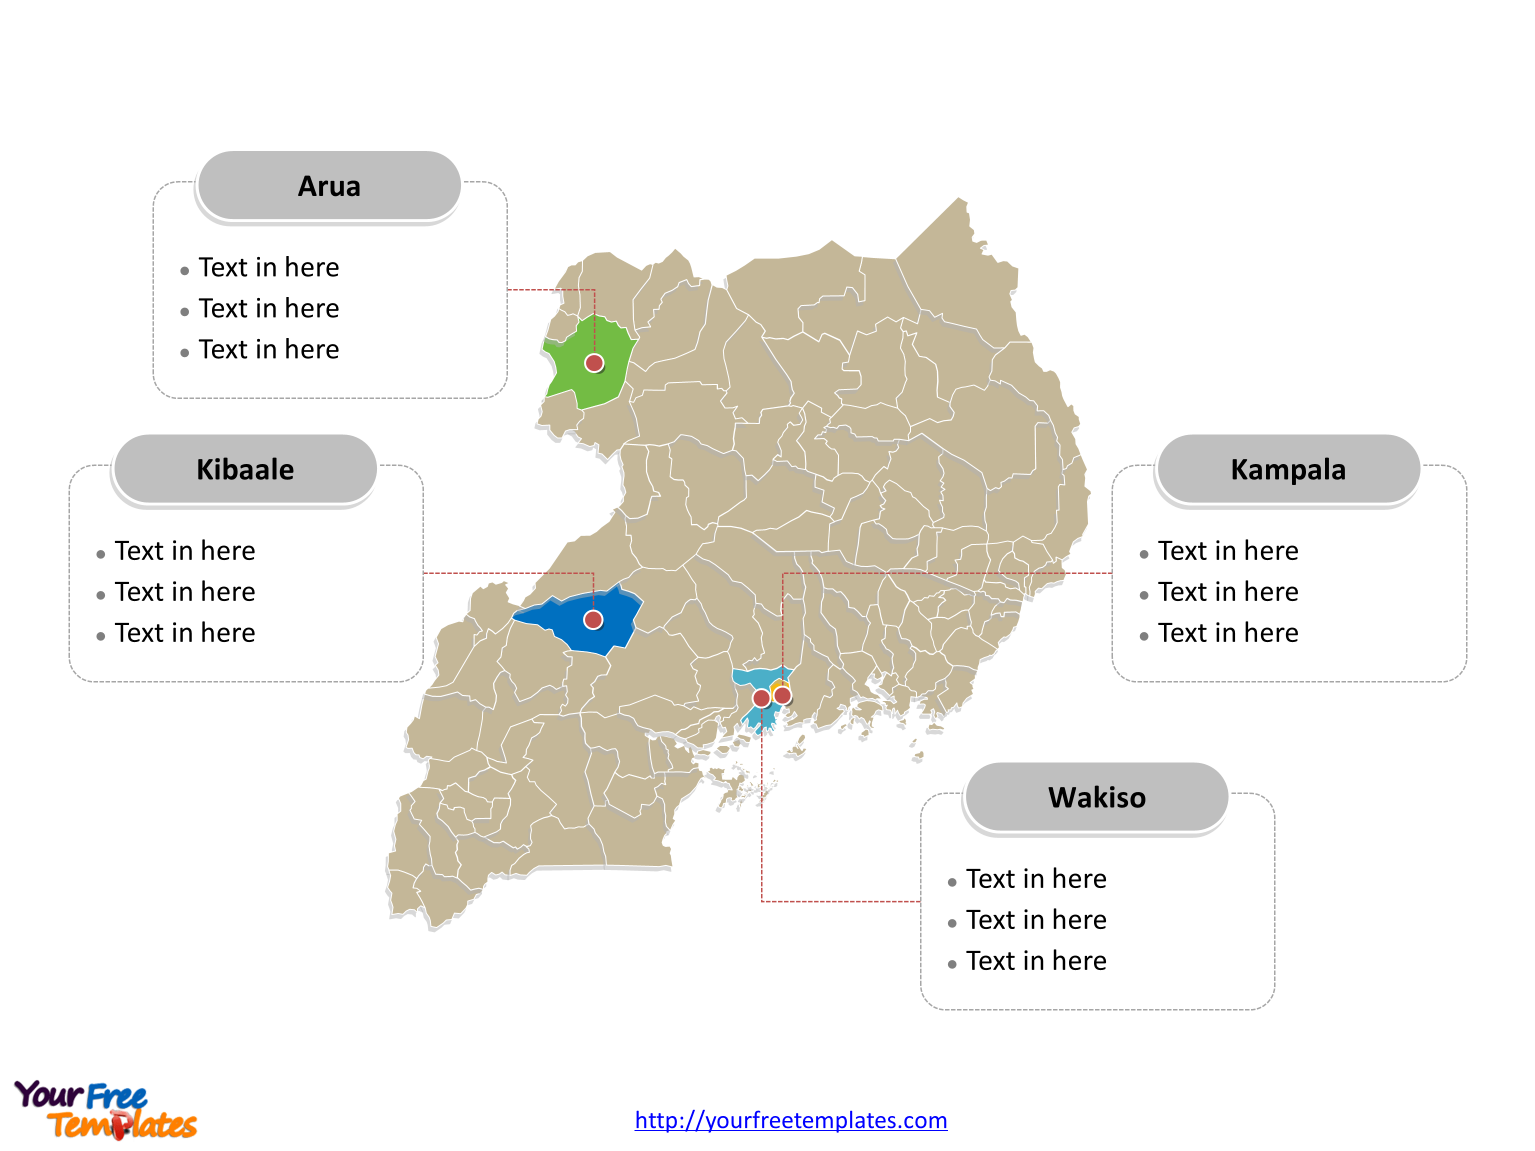 Free Uganda Map Template Free PowerPoint Templates - Uganda map